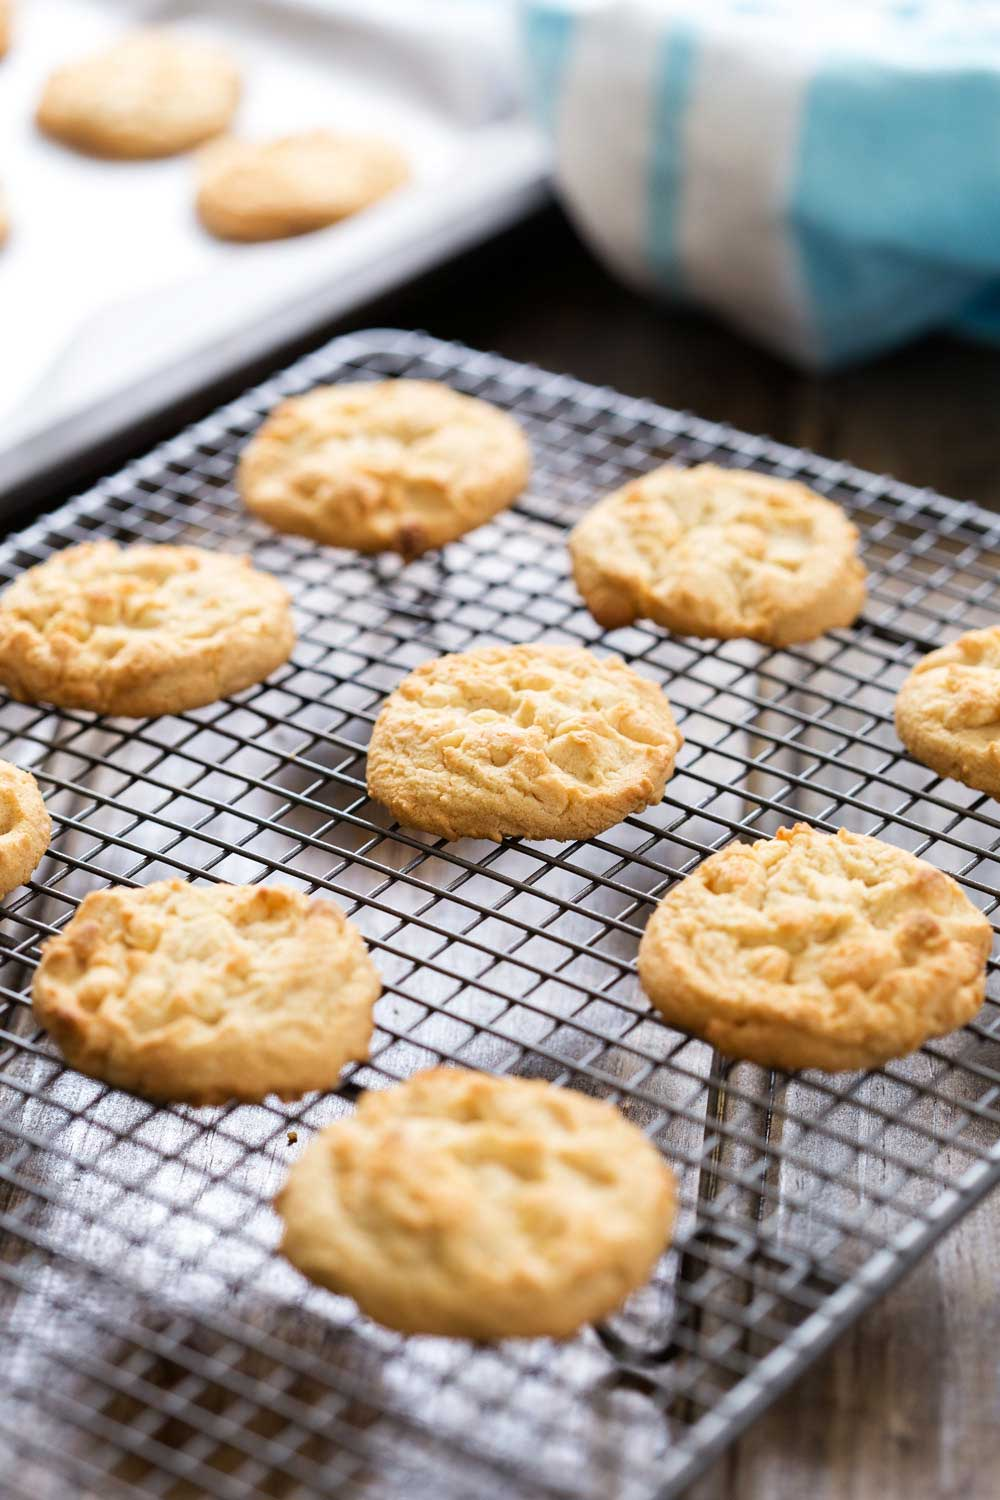 White Chocolate Chip Cookies. These nut free cookies are the perfect treat to whip up for a morning tea or for wrapping up as a hostess gift. Loaded with choc chips these are simple to make and delicious to eat. | Sprinkles and Sprouts